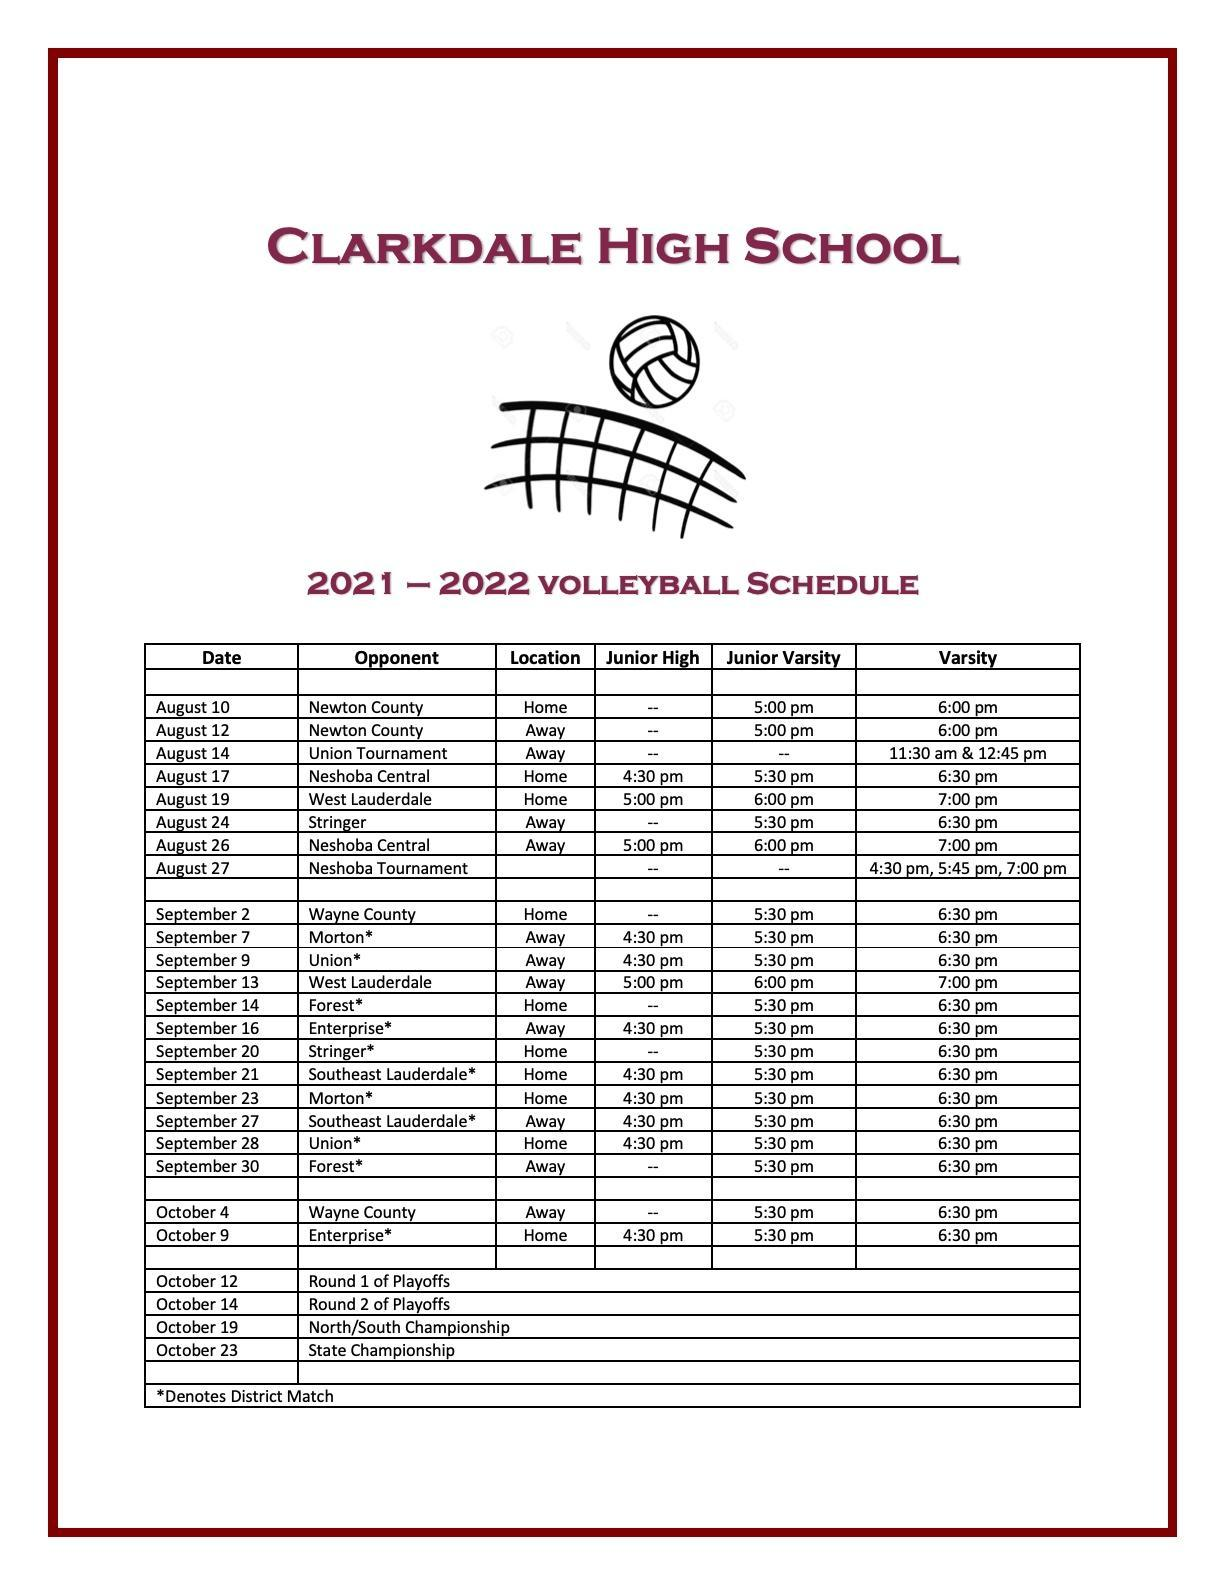 Volleyball Schedule for 2021